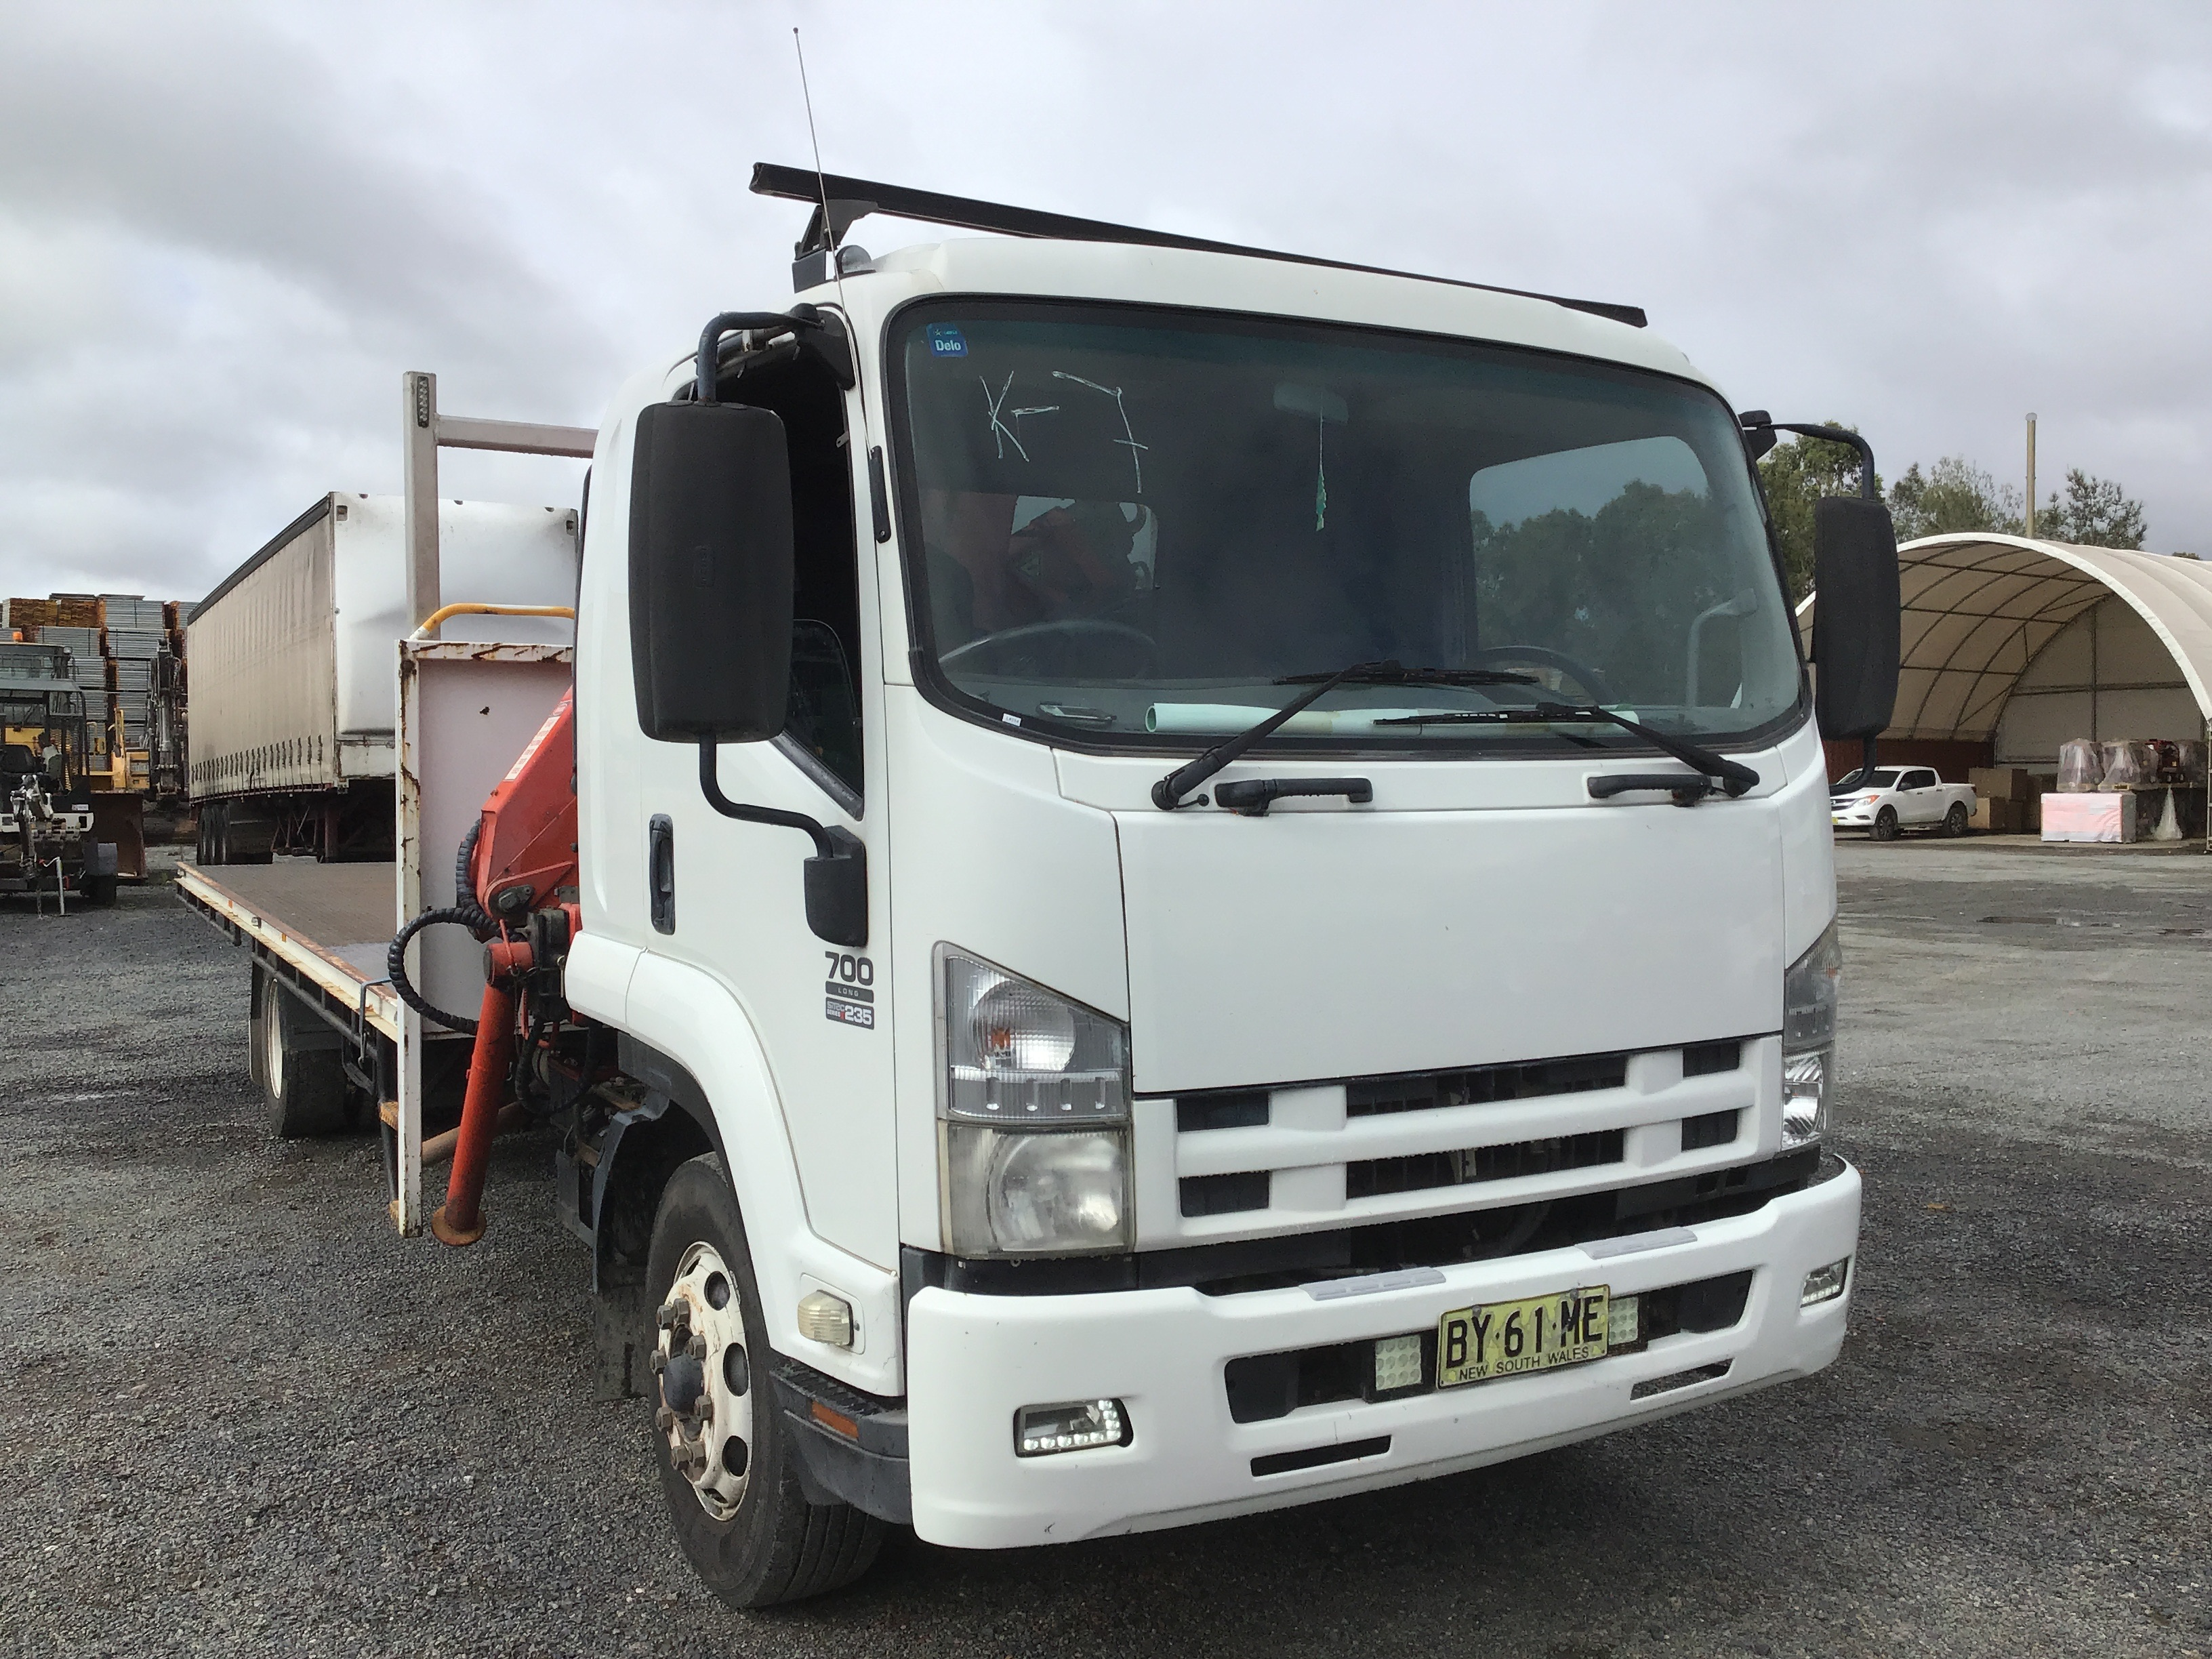 2008 Isuzu FSR 700 Long Sitec 235 Series II 4 x 2 Tray Body Truck